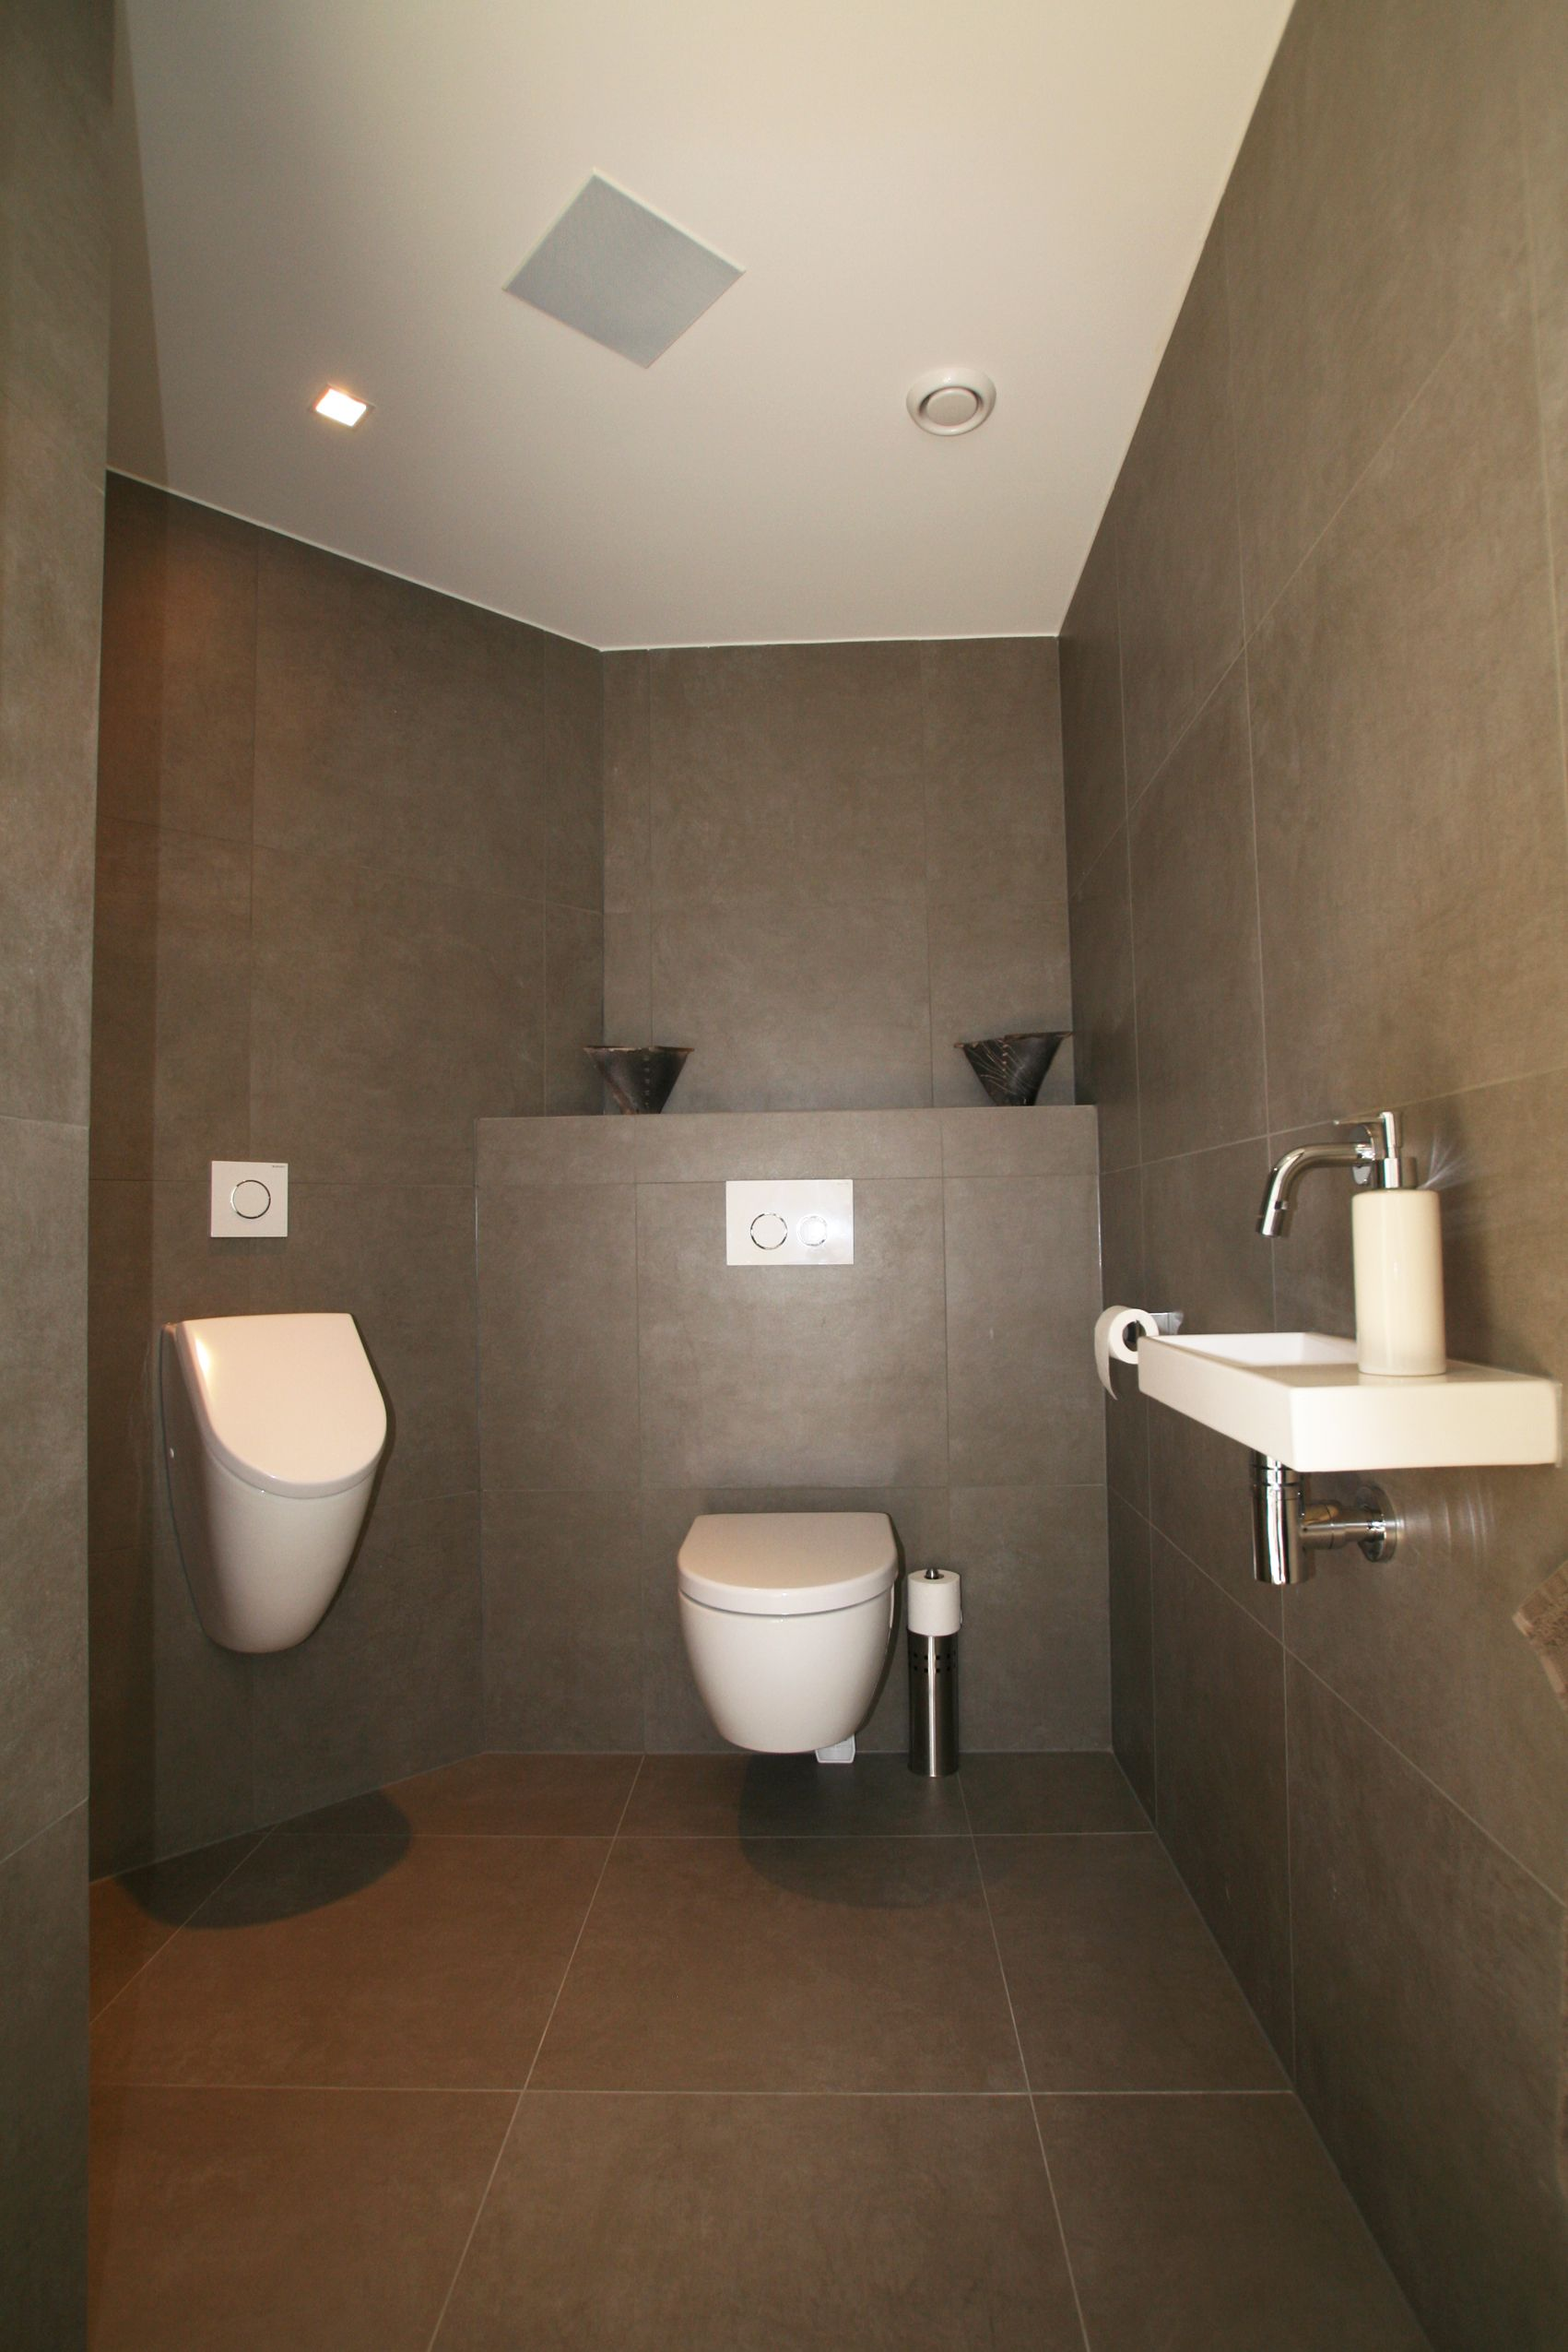 wall hung toilet and urinal and i d also place a bidet and bidet